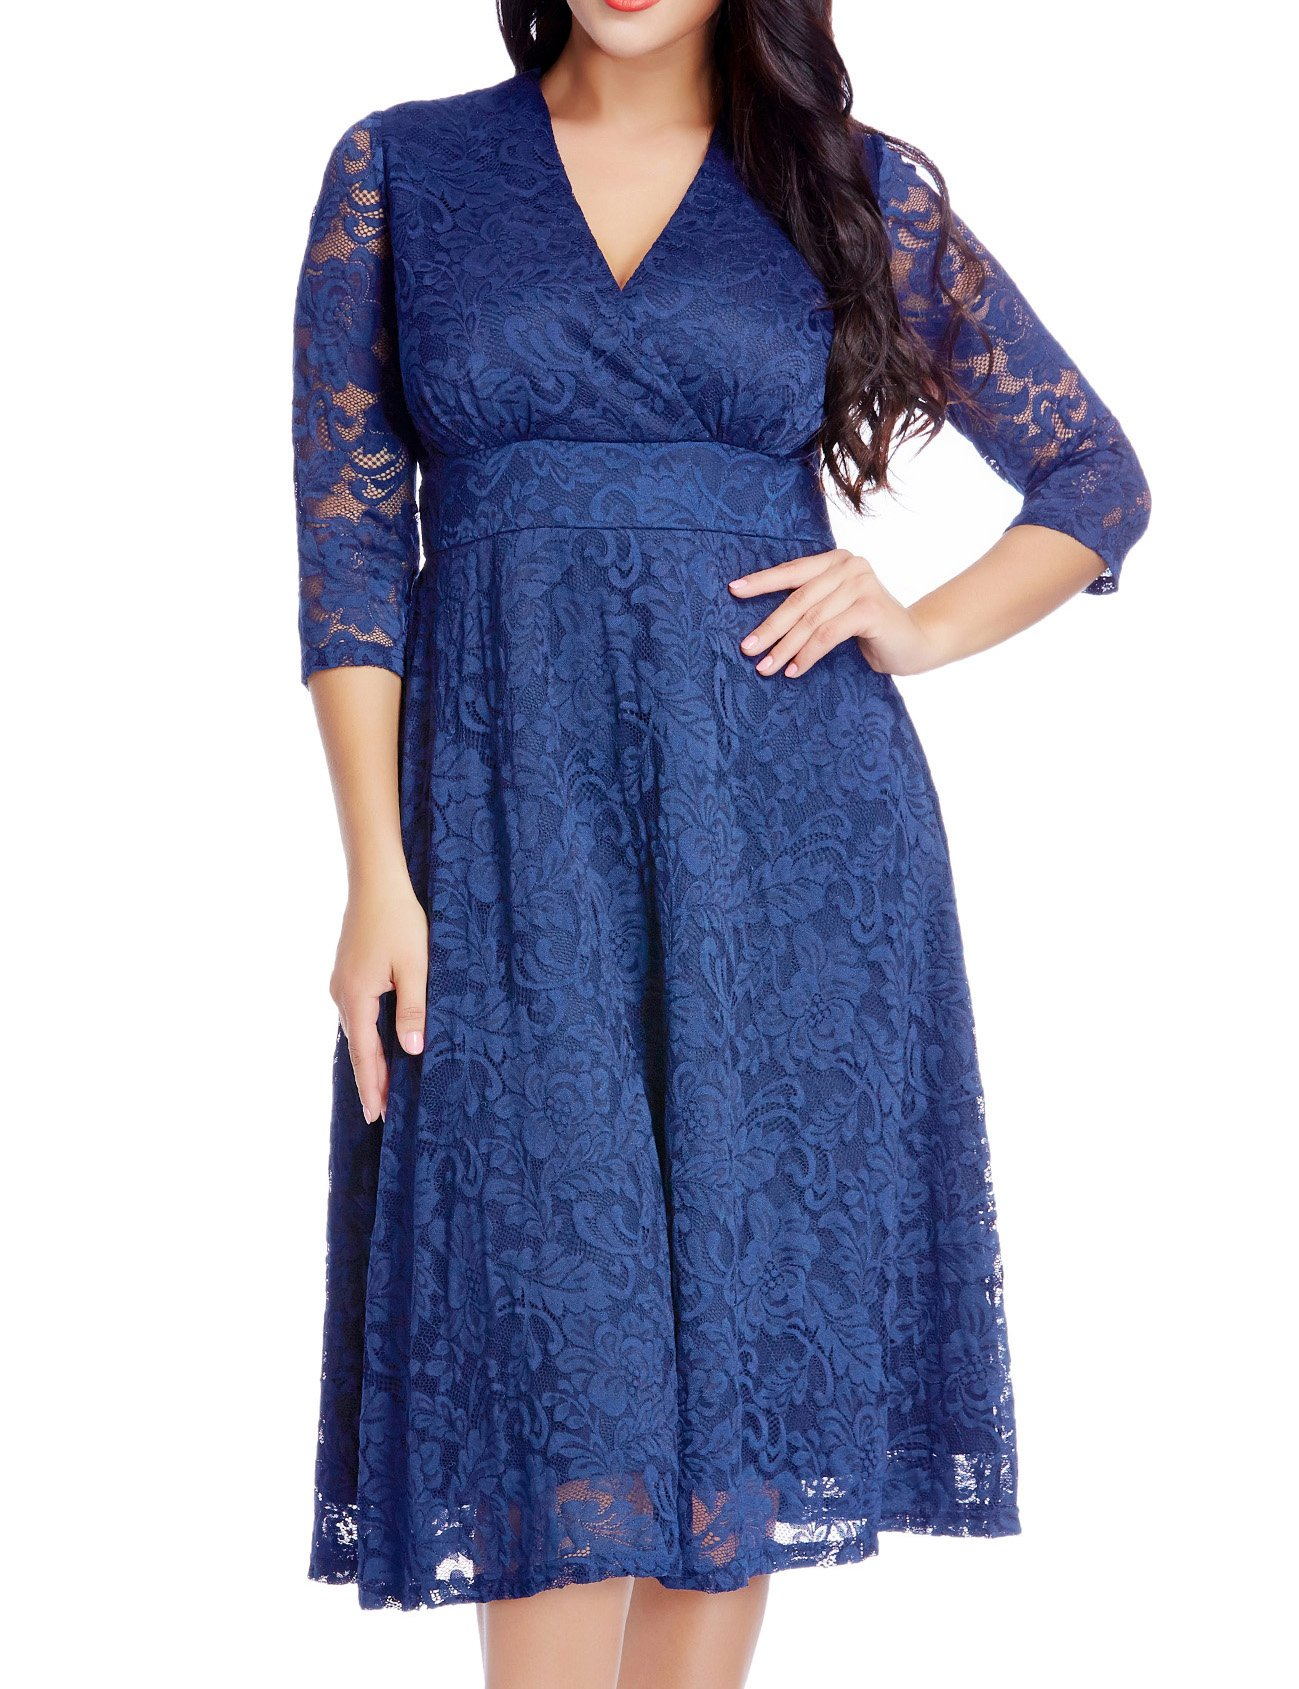 ... Women s Lace Plus Size Mother Of The Bride Skater Dress Bridal Wedding  Party Royal Blue 26W.    1ca158596